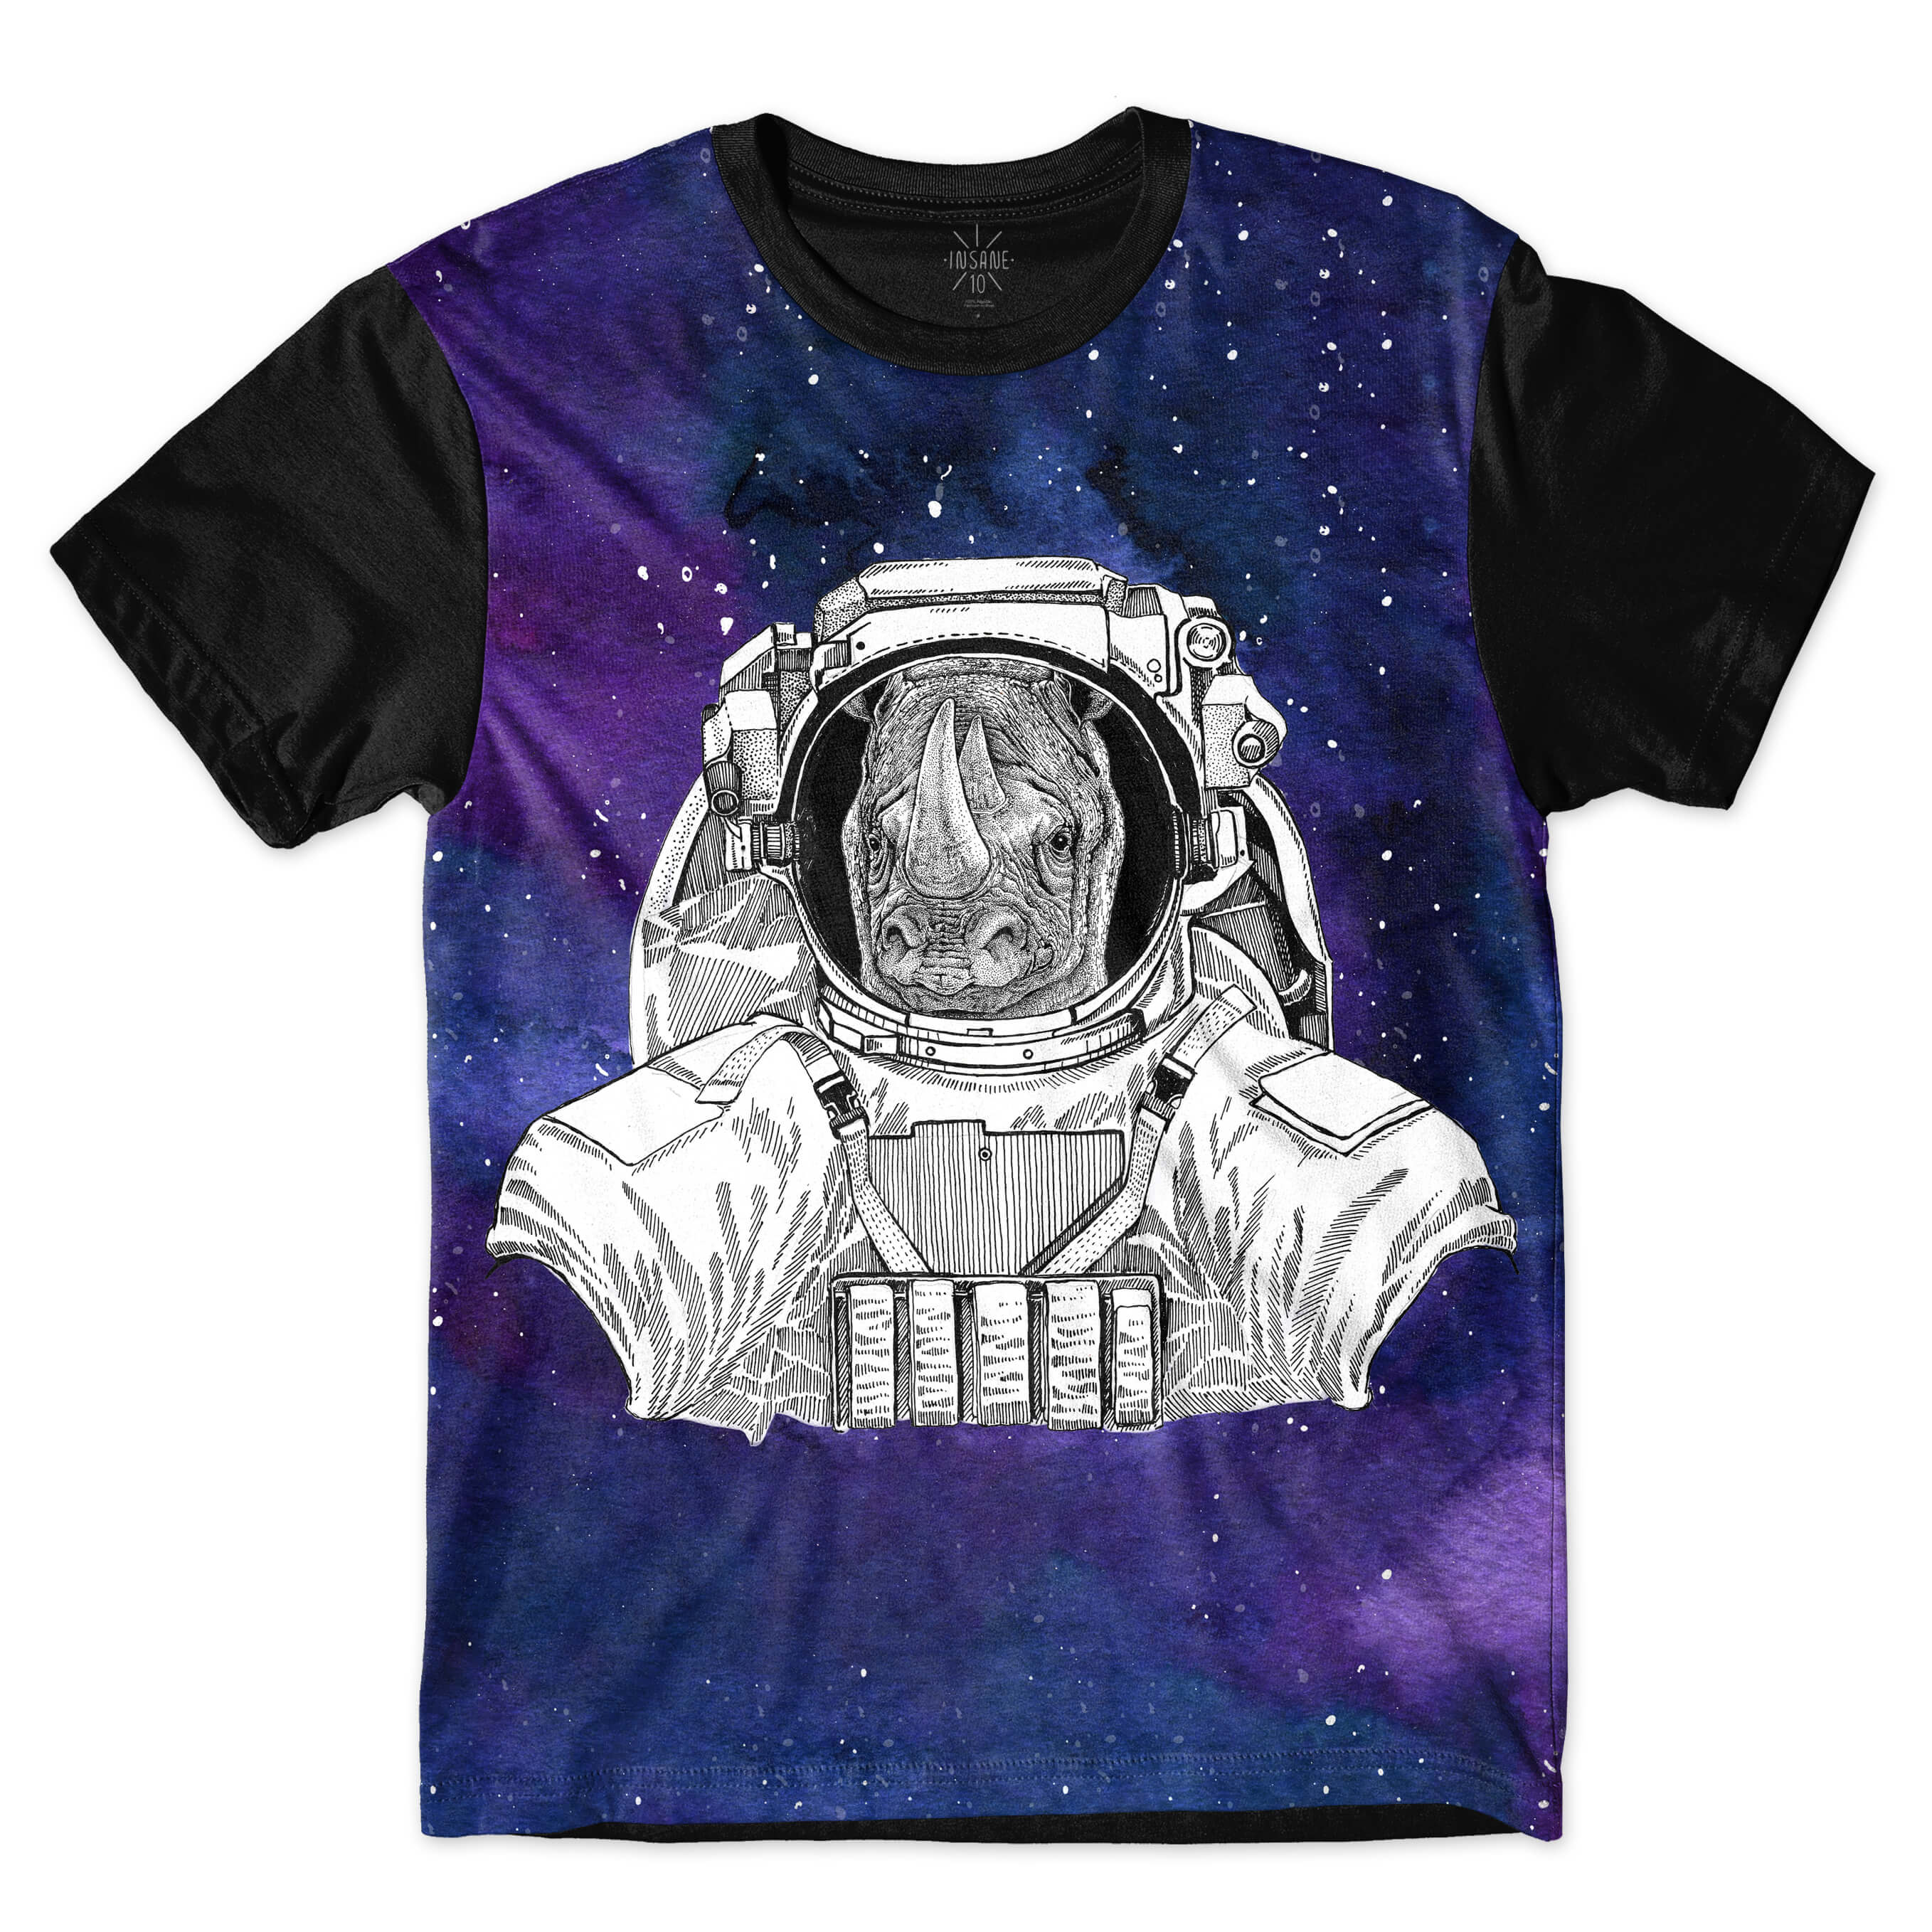 Camiseta Insane 10 Animal Astronauta Rinoceronte no Espaço Full Print Azul